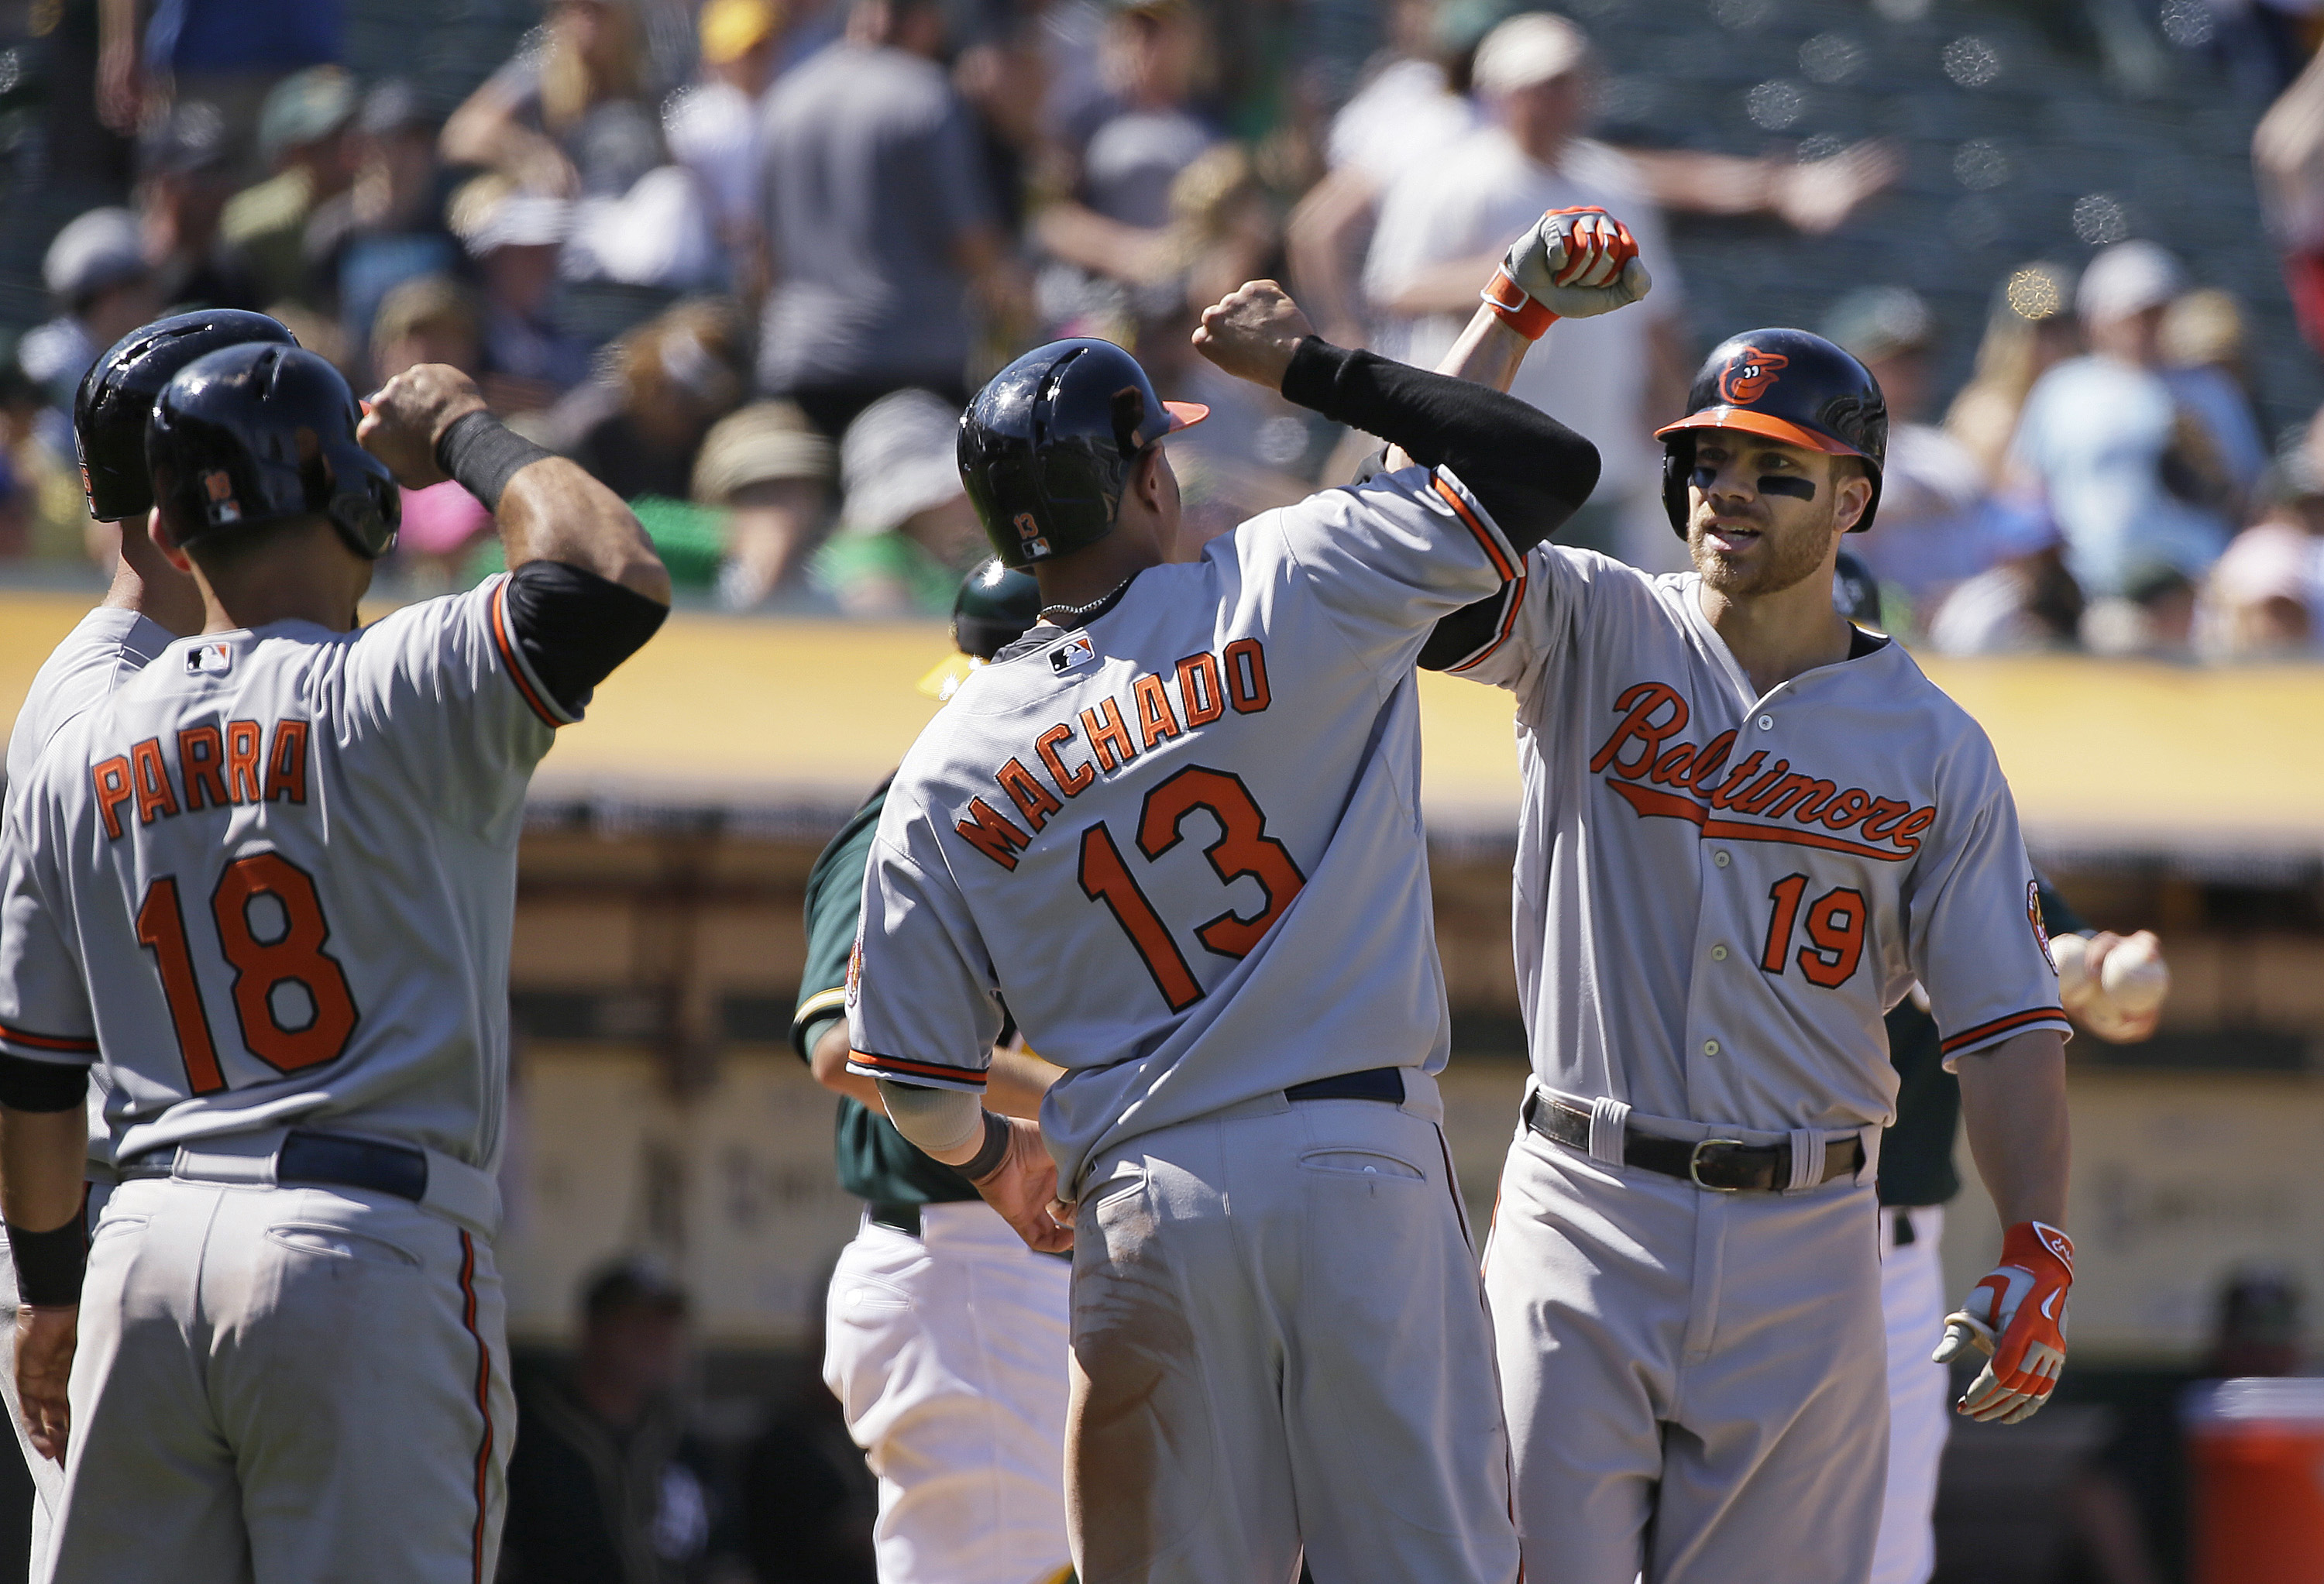 Baltimore Orioles' Chris Davis, right, is greeted by teammates Gerardo Parra, left, and Manny Machado, center, after hitting a grand slam off Oakland Athletics relief pitcher Arnold Leon during the 10th inning of a baseball game Wednesday, Aug. 5, 2015, i